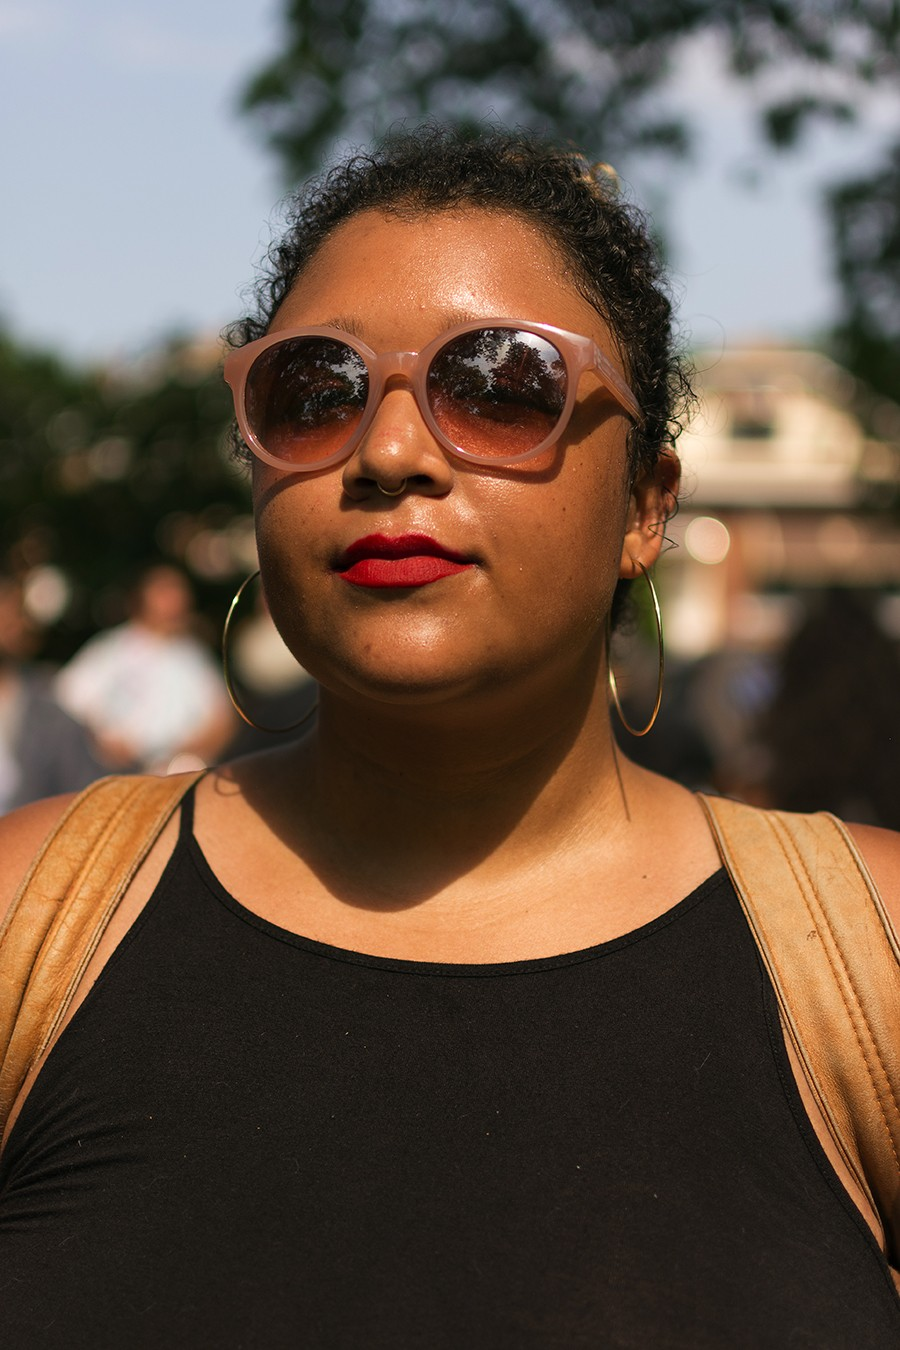 """Alexis Bennett: """"Dyke March gives me a space to commune with other queers like myself and see myself represented in so many other people. Right now it's such a respite from daily fatigue, from what we see in the news, and experience day to day as queers."""" - ROBYN DAY"""